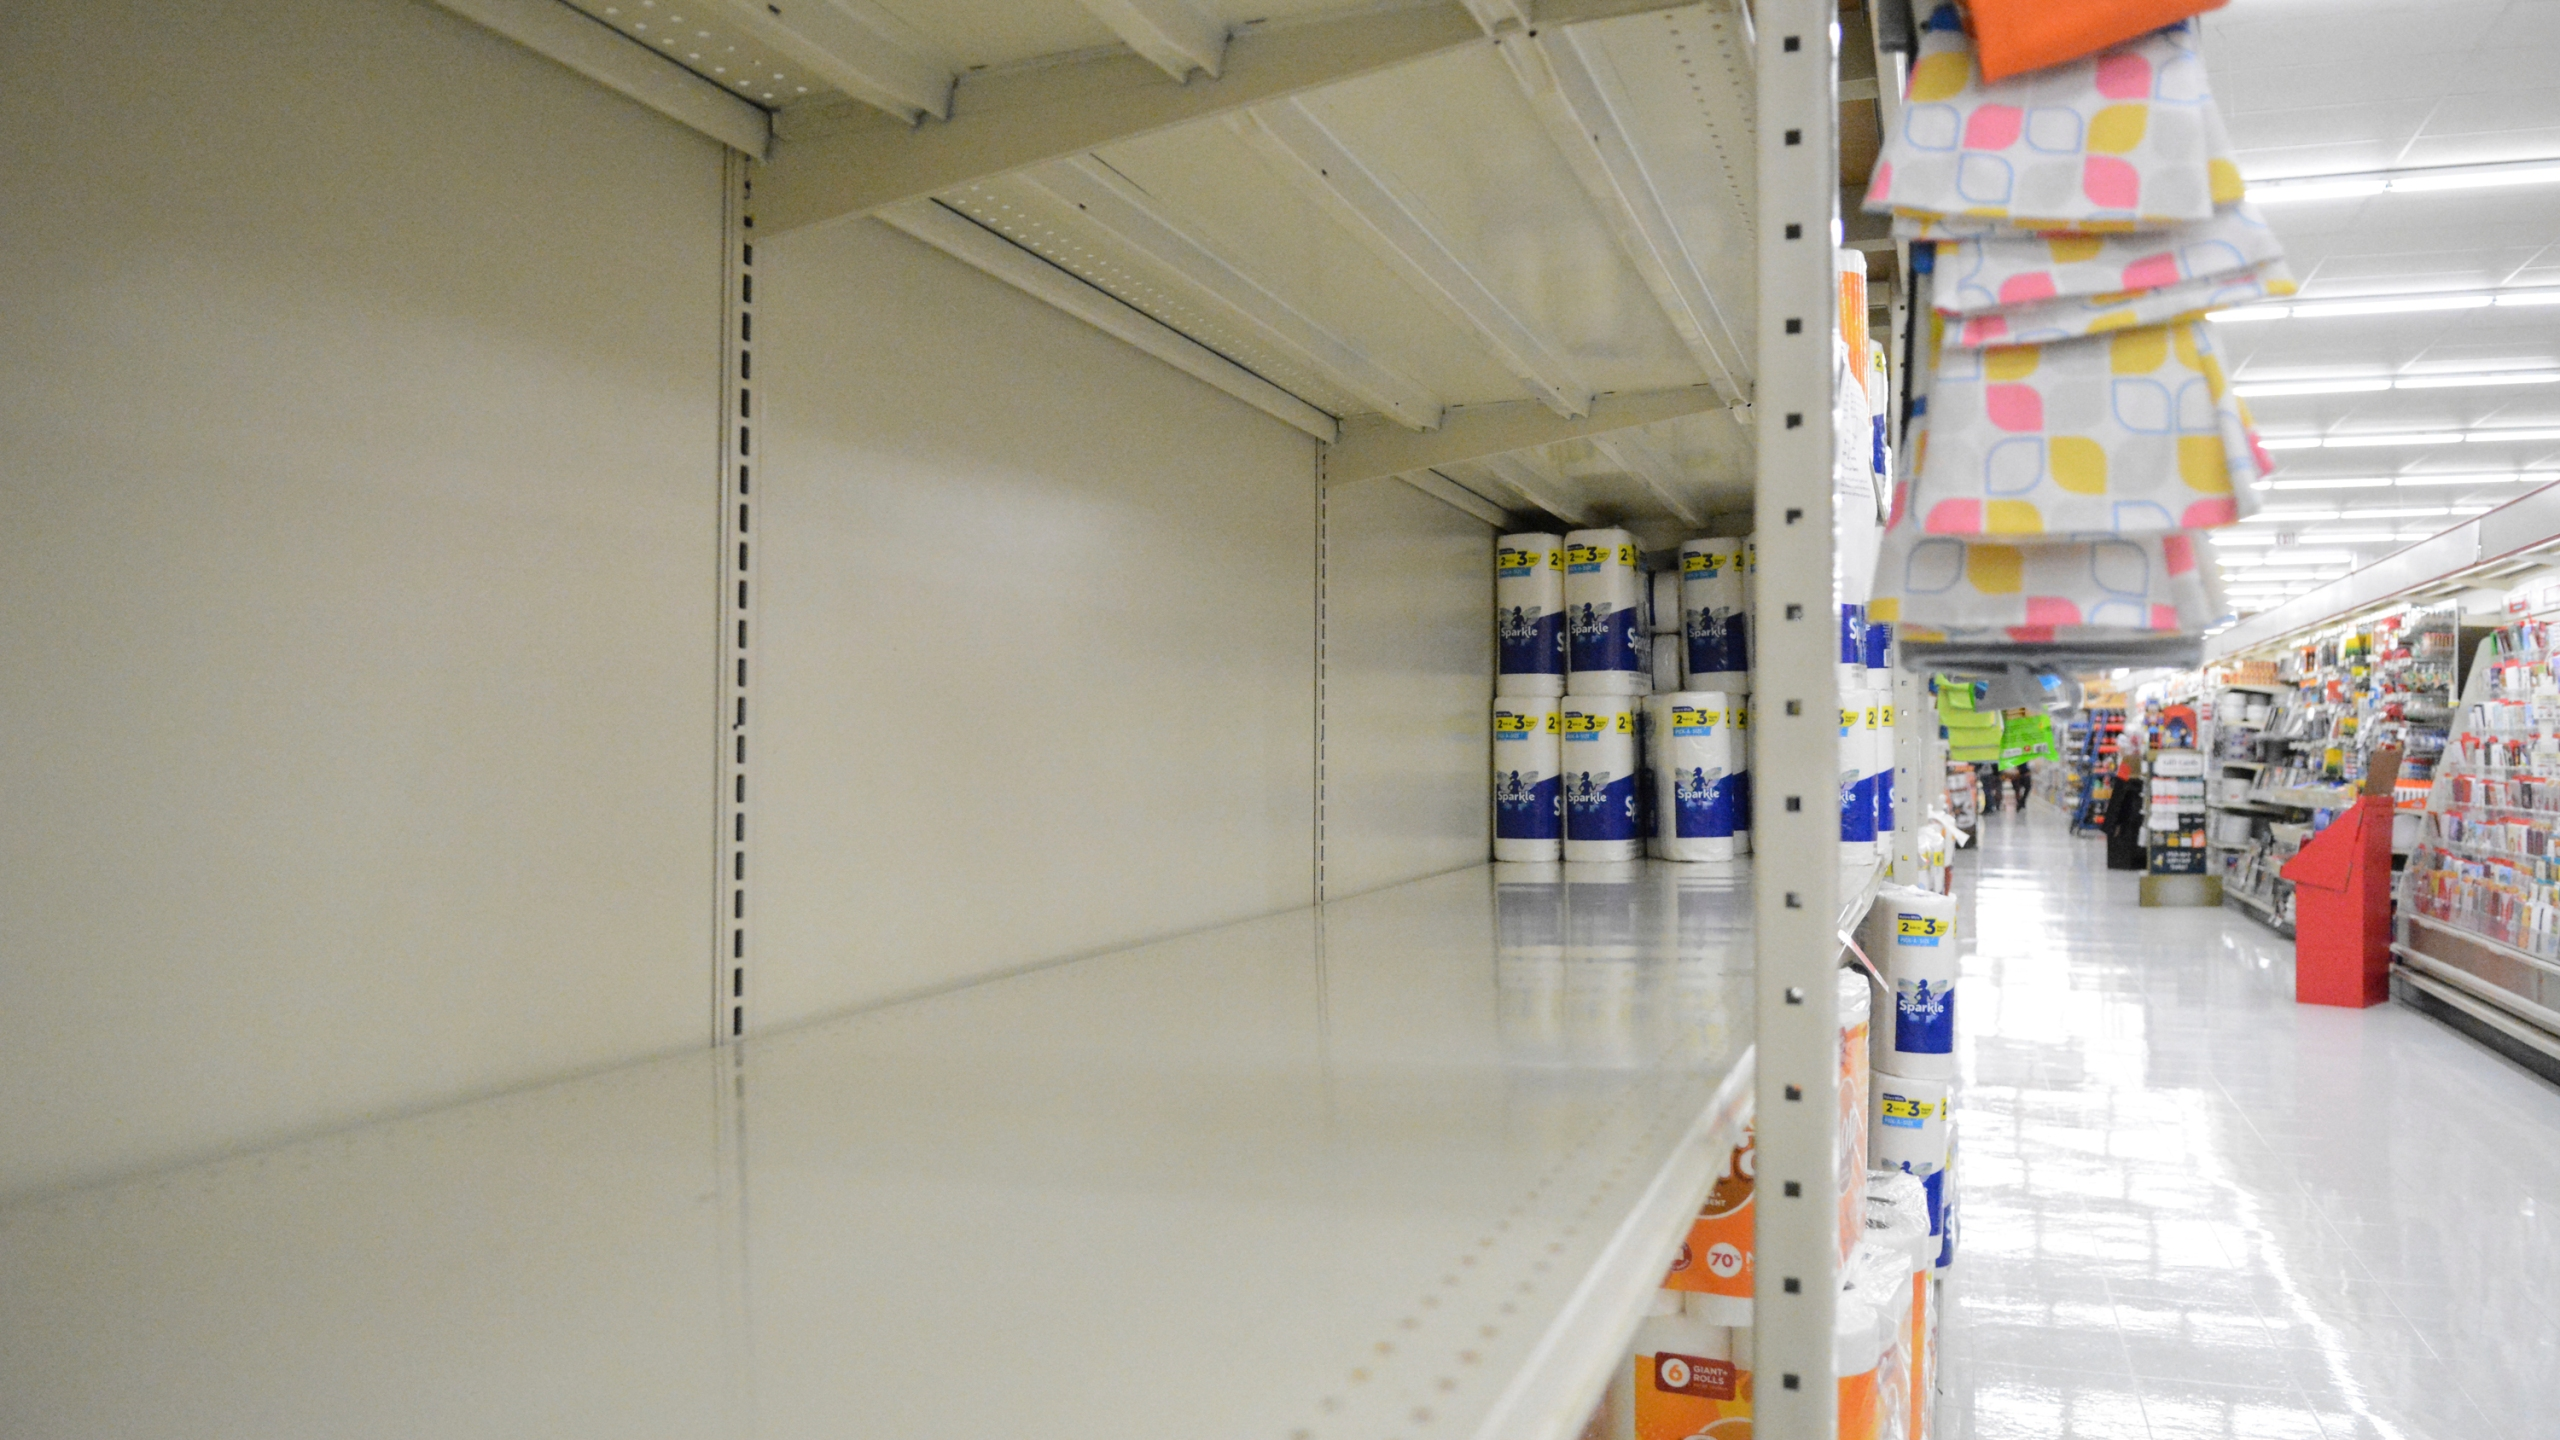 In this Monday, Nov. 2, 2020, file photo, a section of shelving that normally holds paper towels sits empty at Redner's in Schuylkill Haven, Pa., amid the latest surge of the coronavirus pandemic. (Lindsey Shuey/The Republican-Herald via AP)